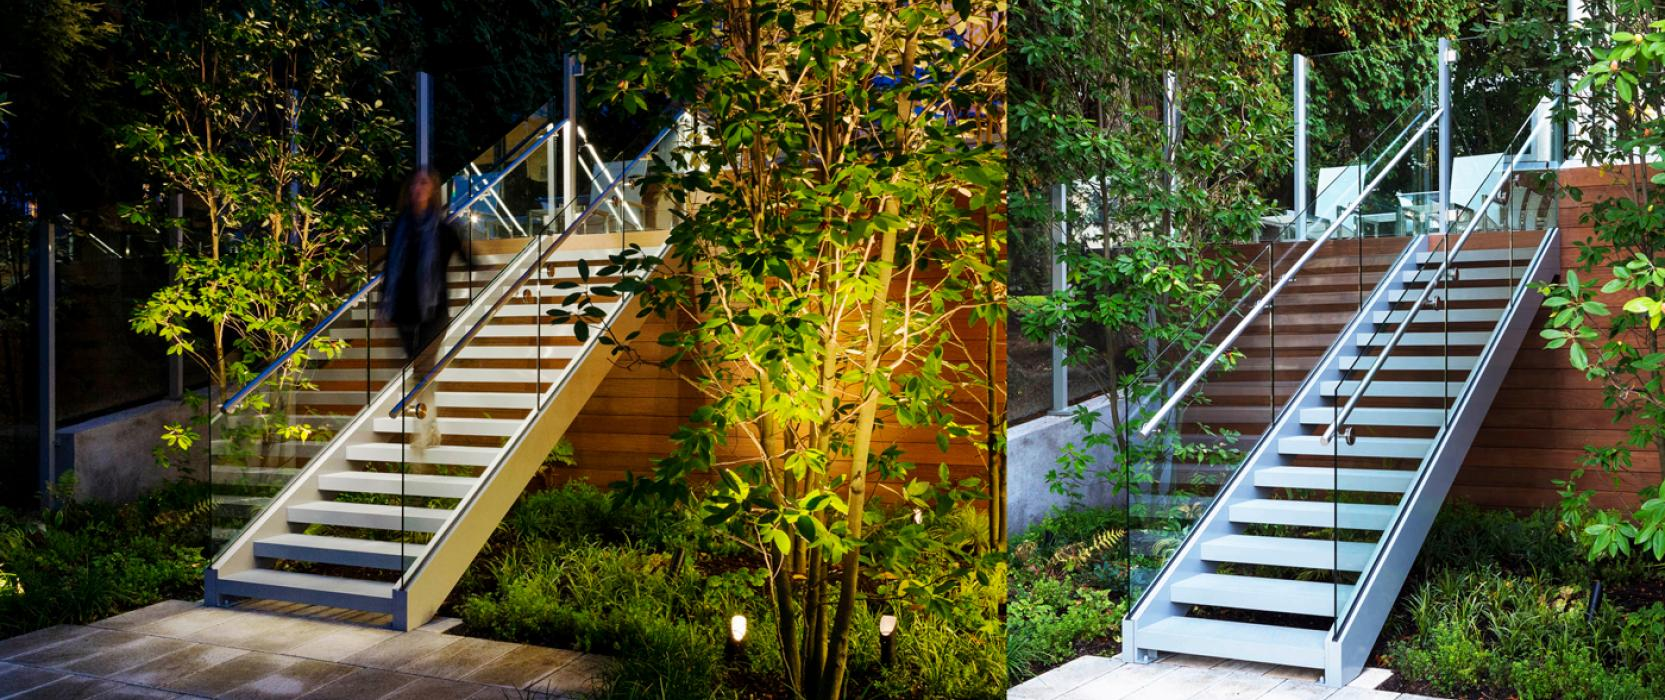 High-end lighting and landscape designs